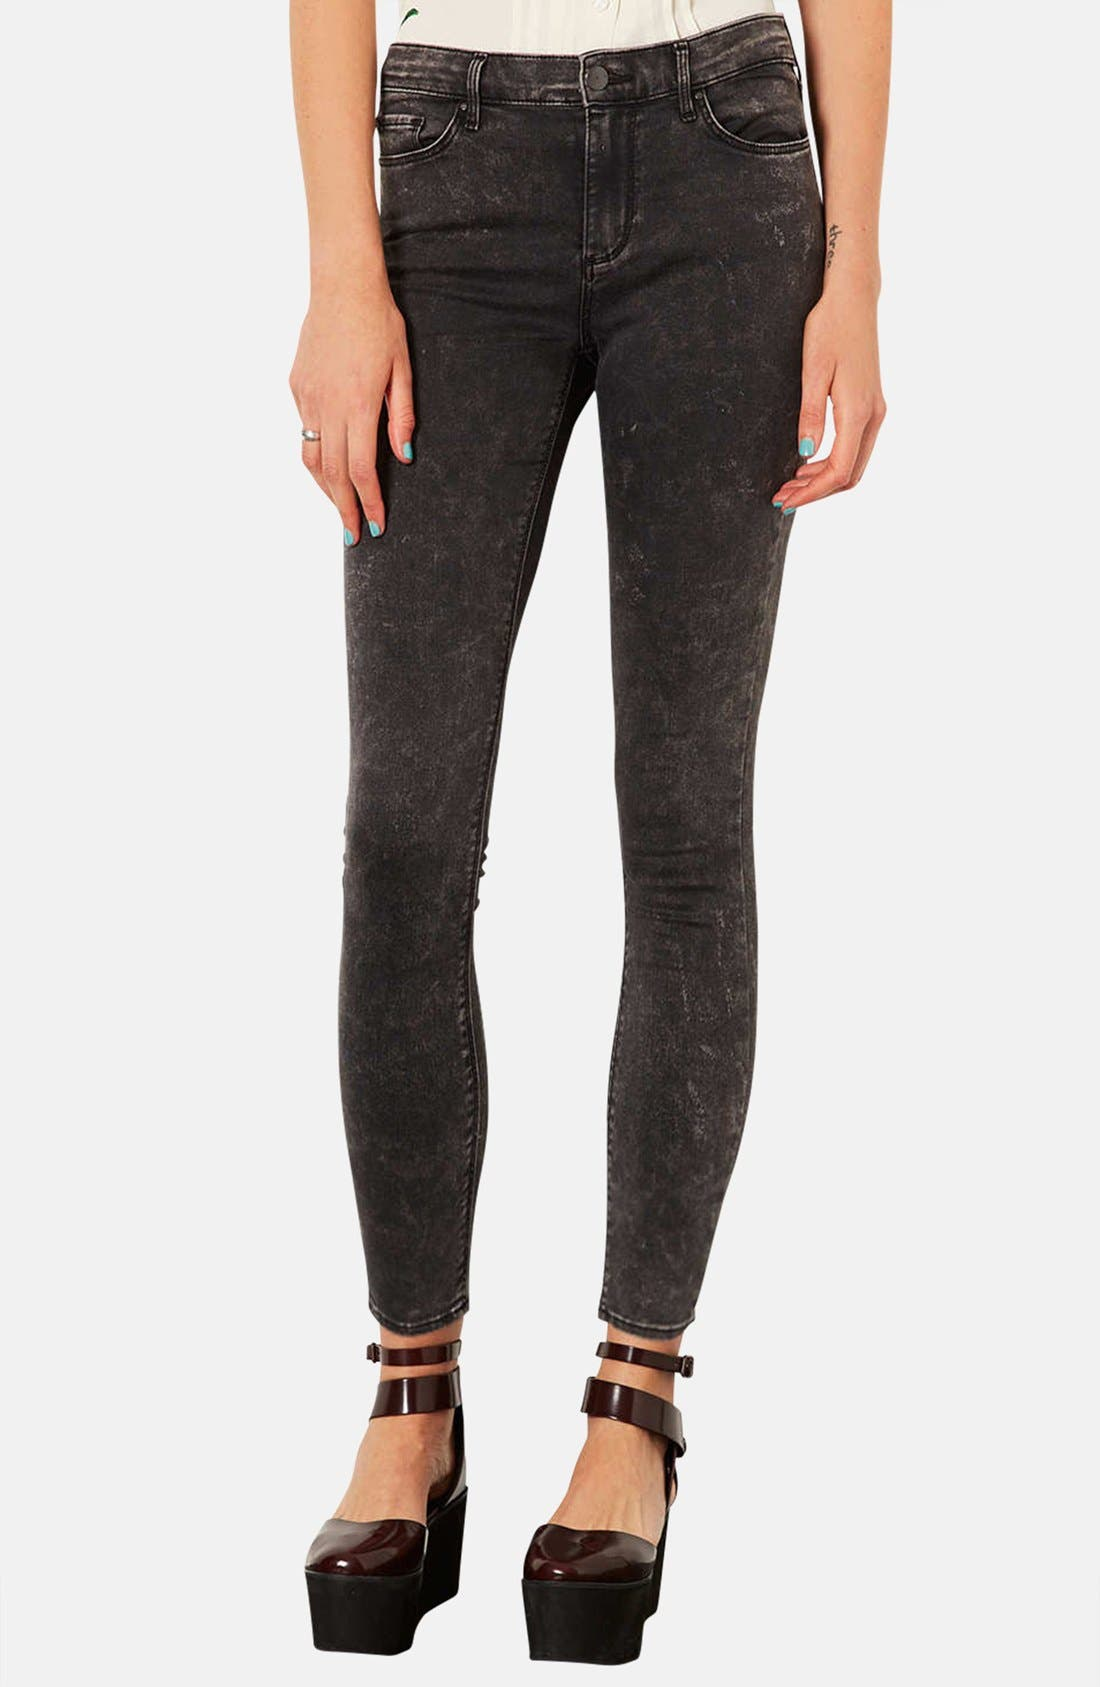 Alternate Image 1 Selected - Topshop Moto 'Leigh' Mottled Skinny Jeans (Regular & Short)